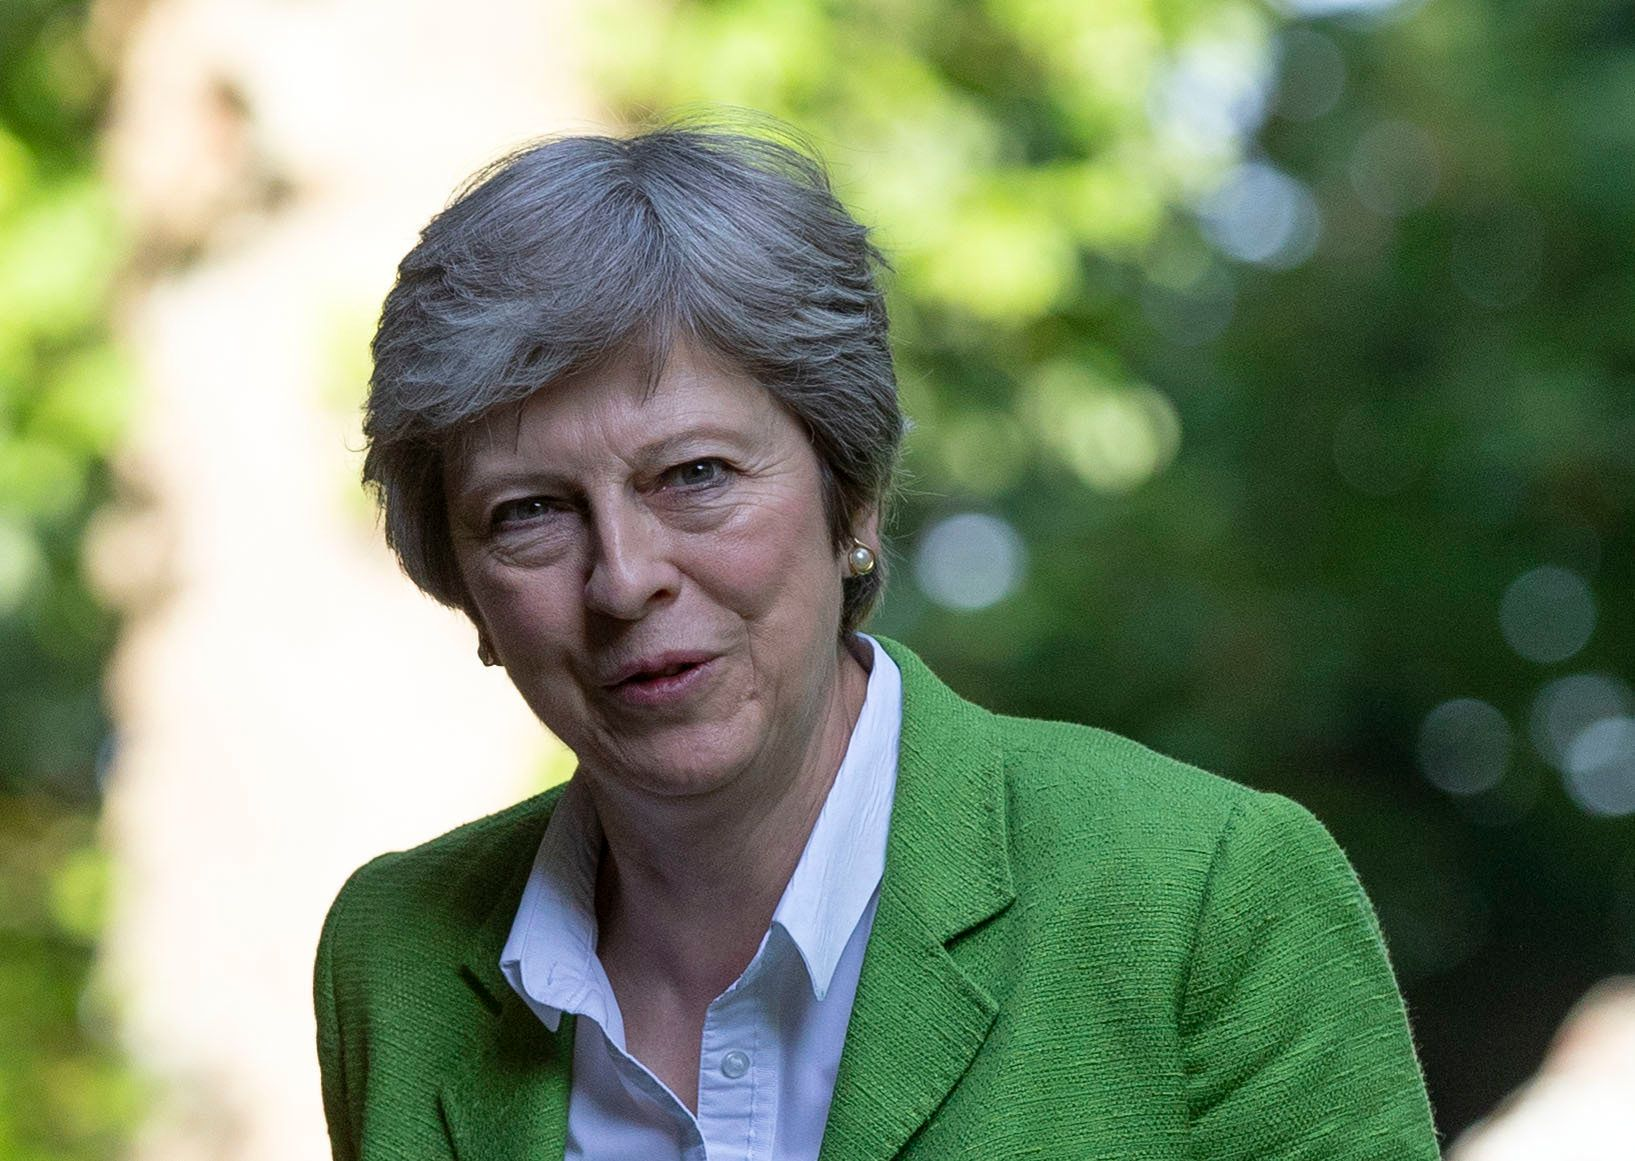 PM Faces Fresh Tory Criticism Over Her 'Quite Shameful' Handling Of Brexit